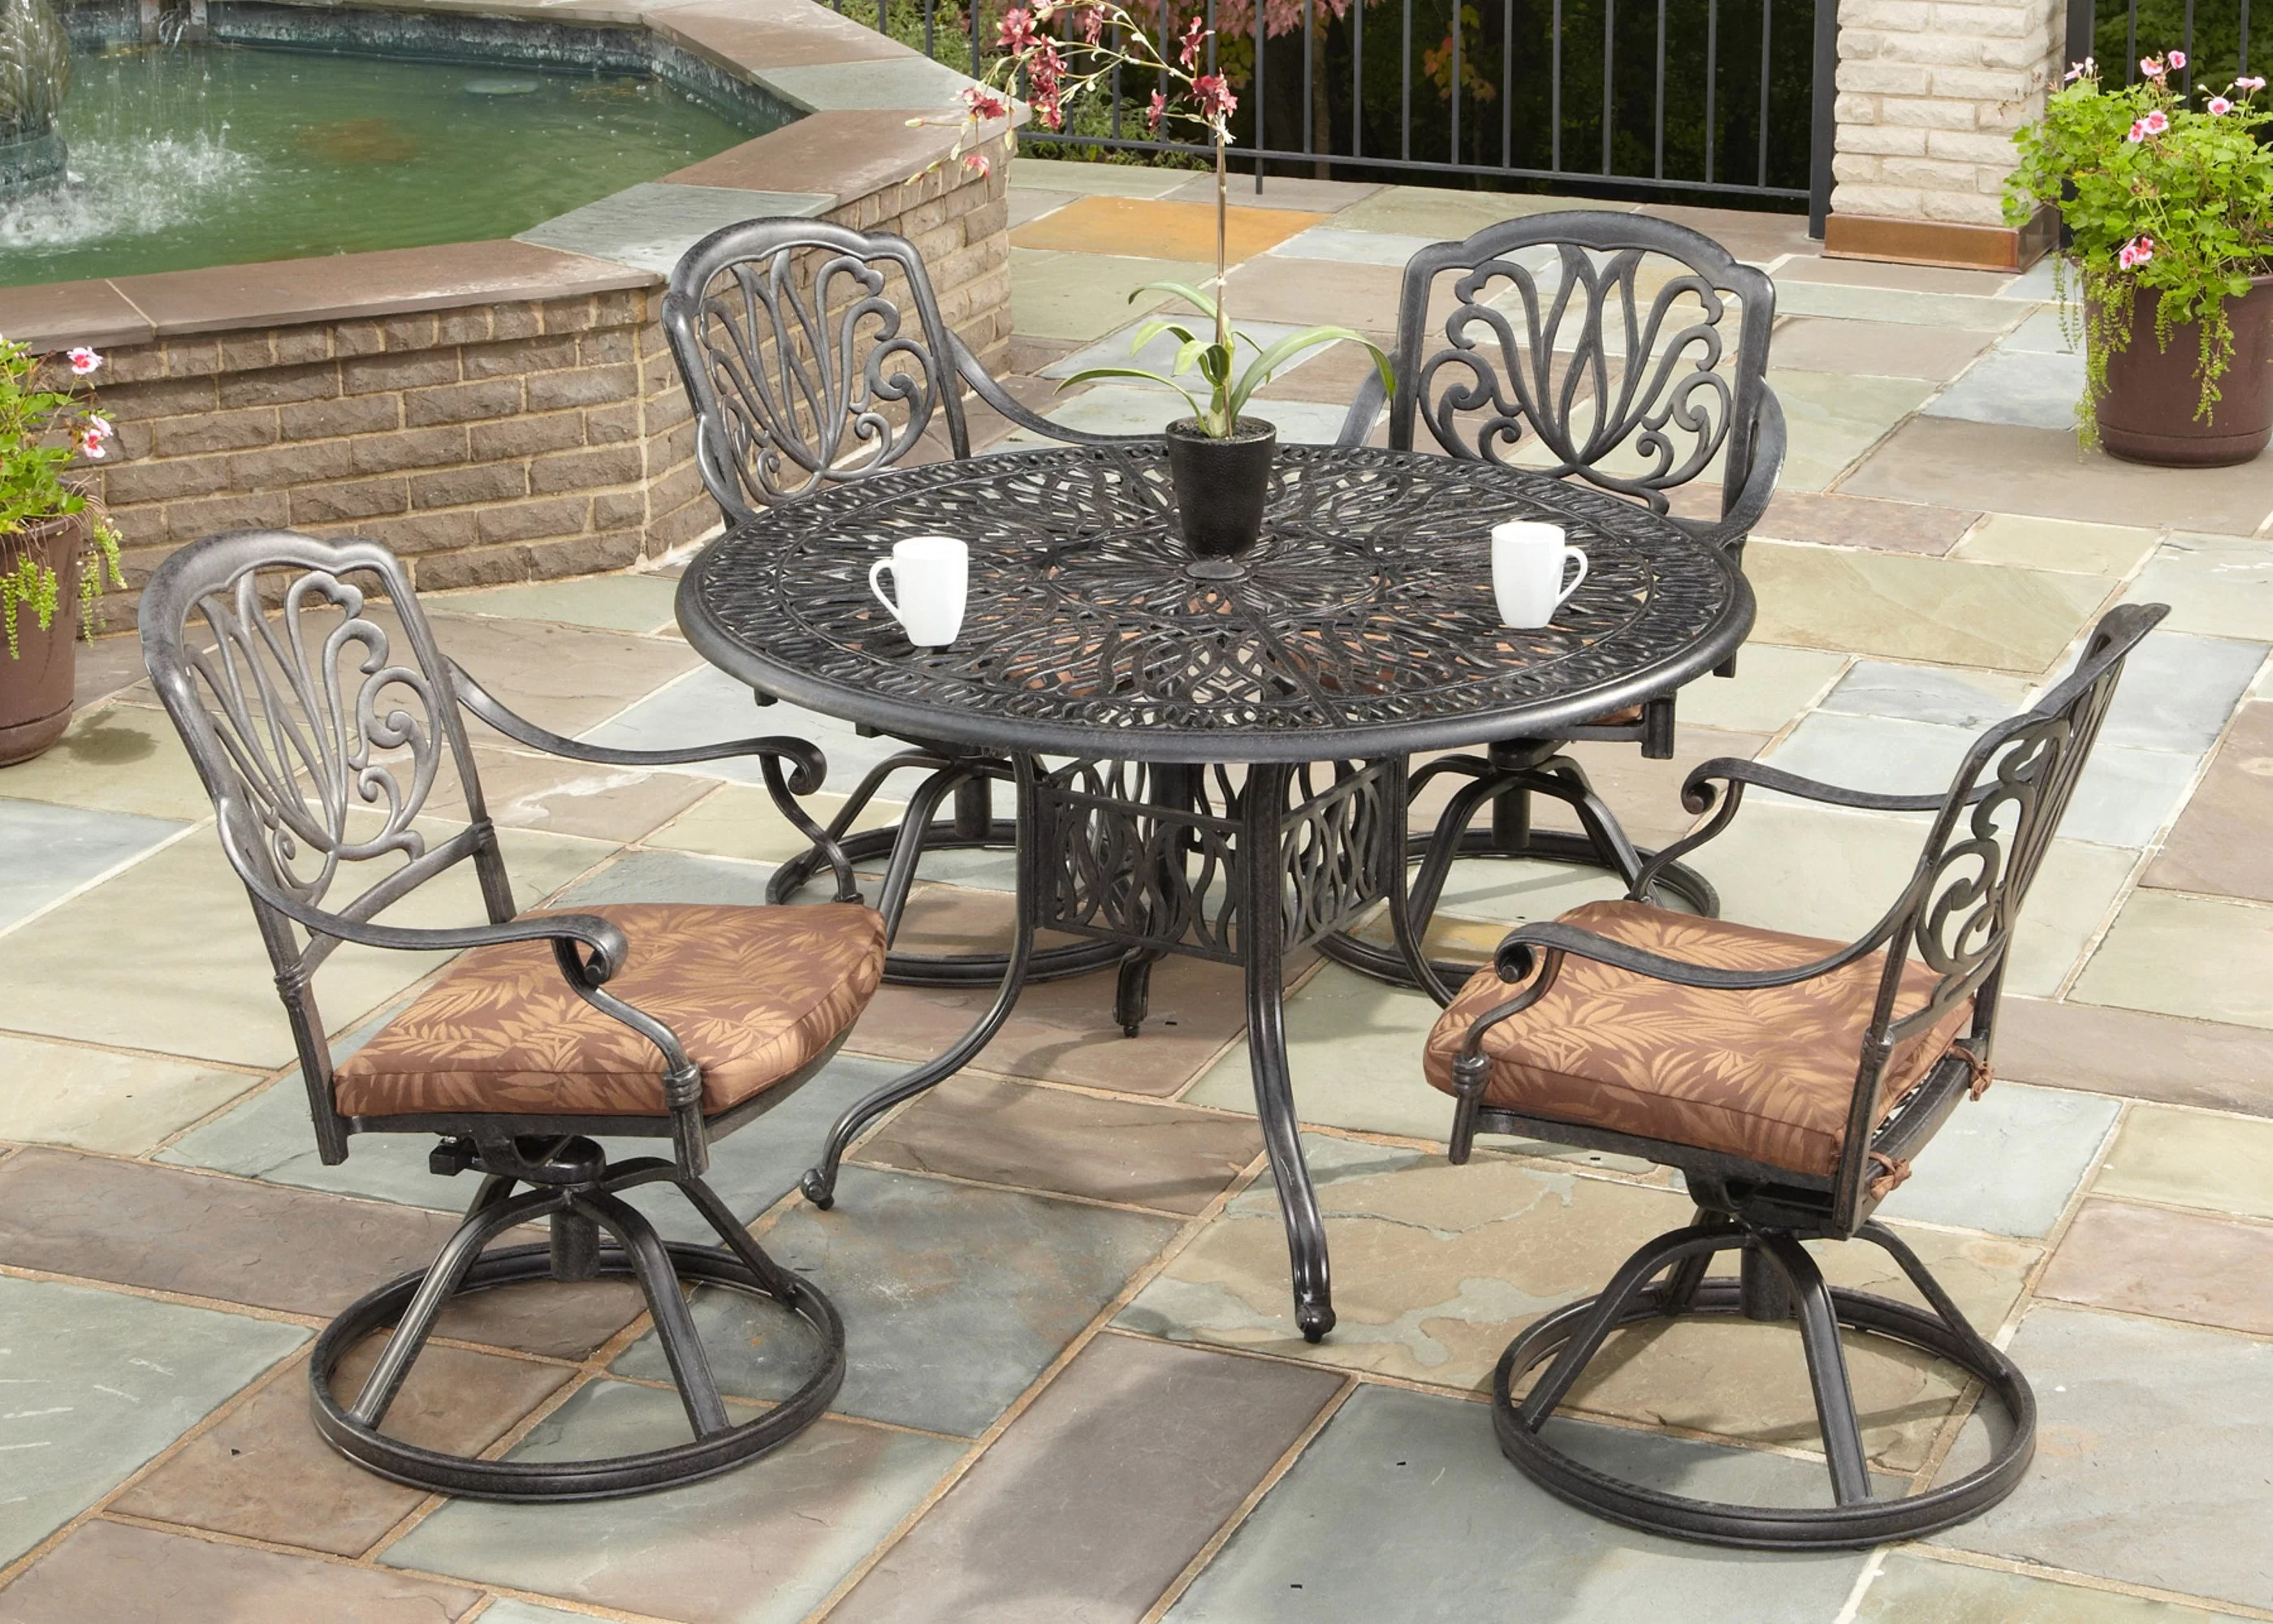 office chair qvc best desk for short person one allium way dwight 5 piece dining set with cushions